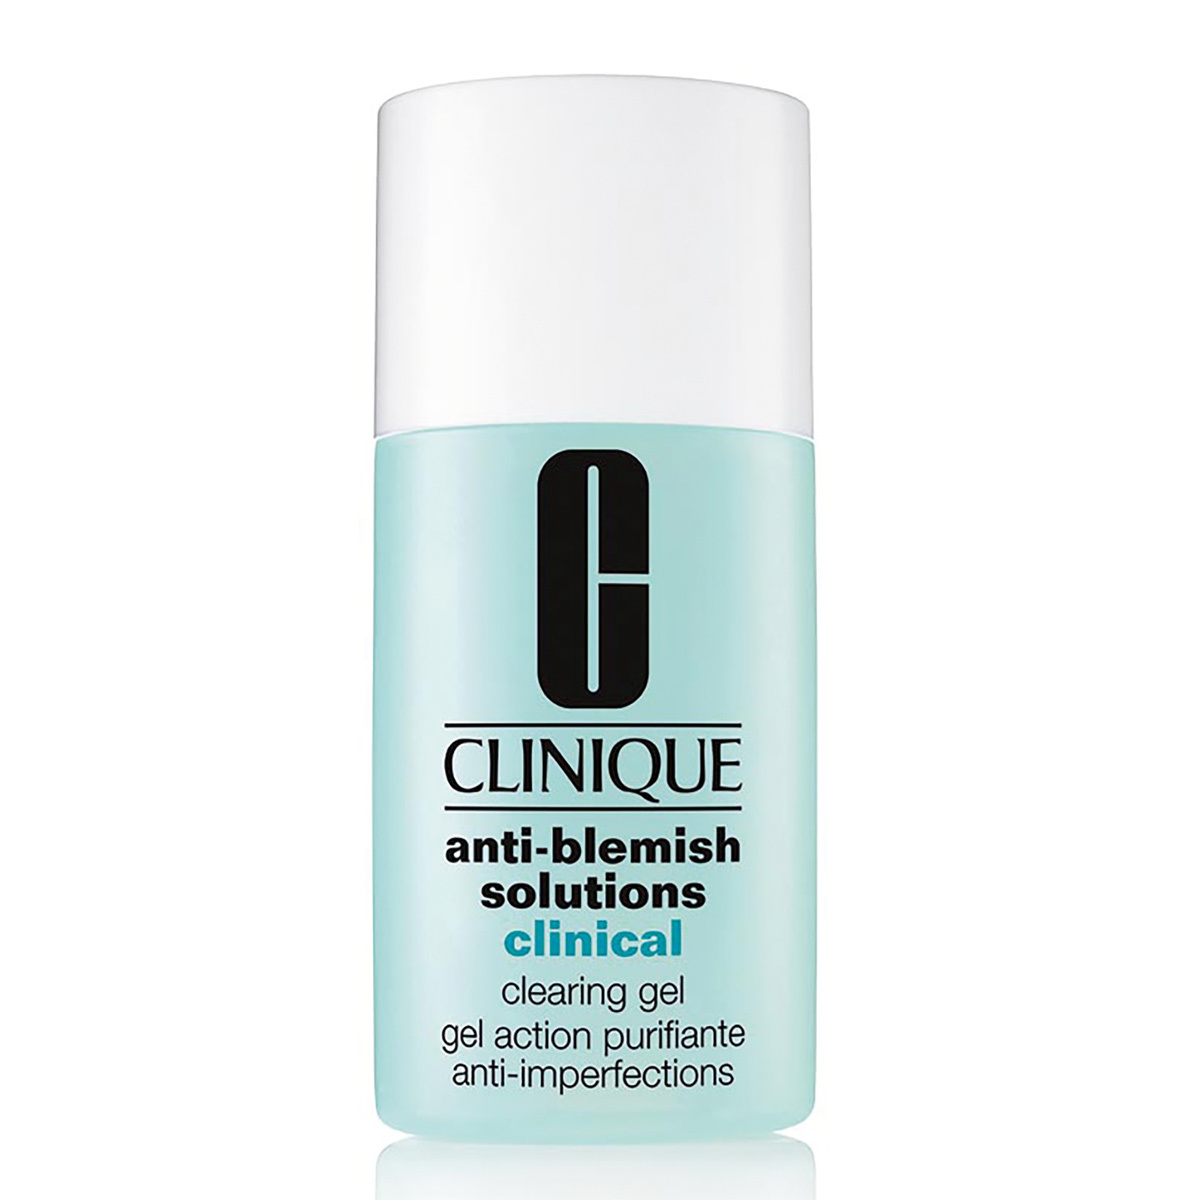 Acne Solutions Clinical Clearing Gel de Clinique.